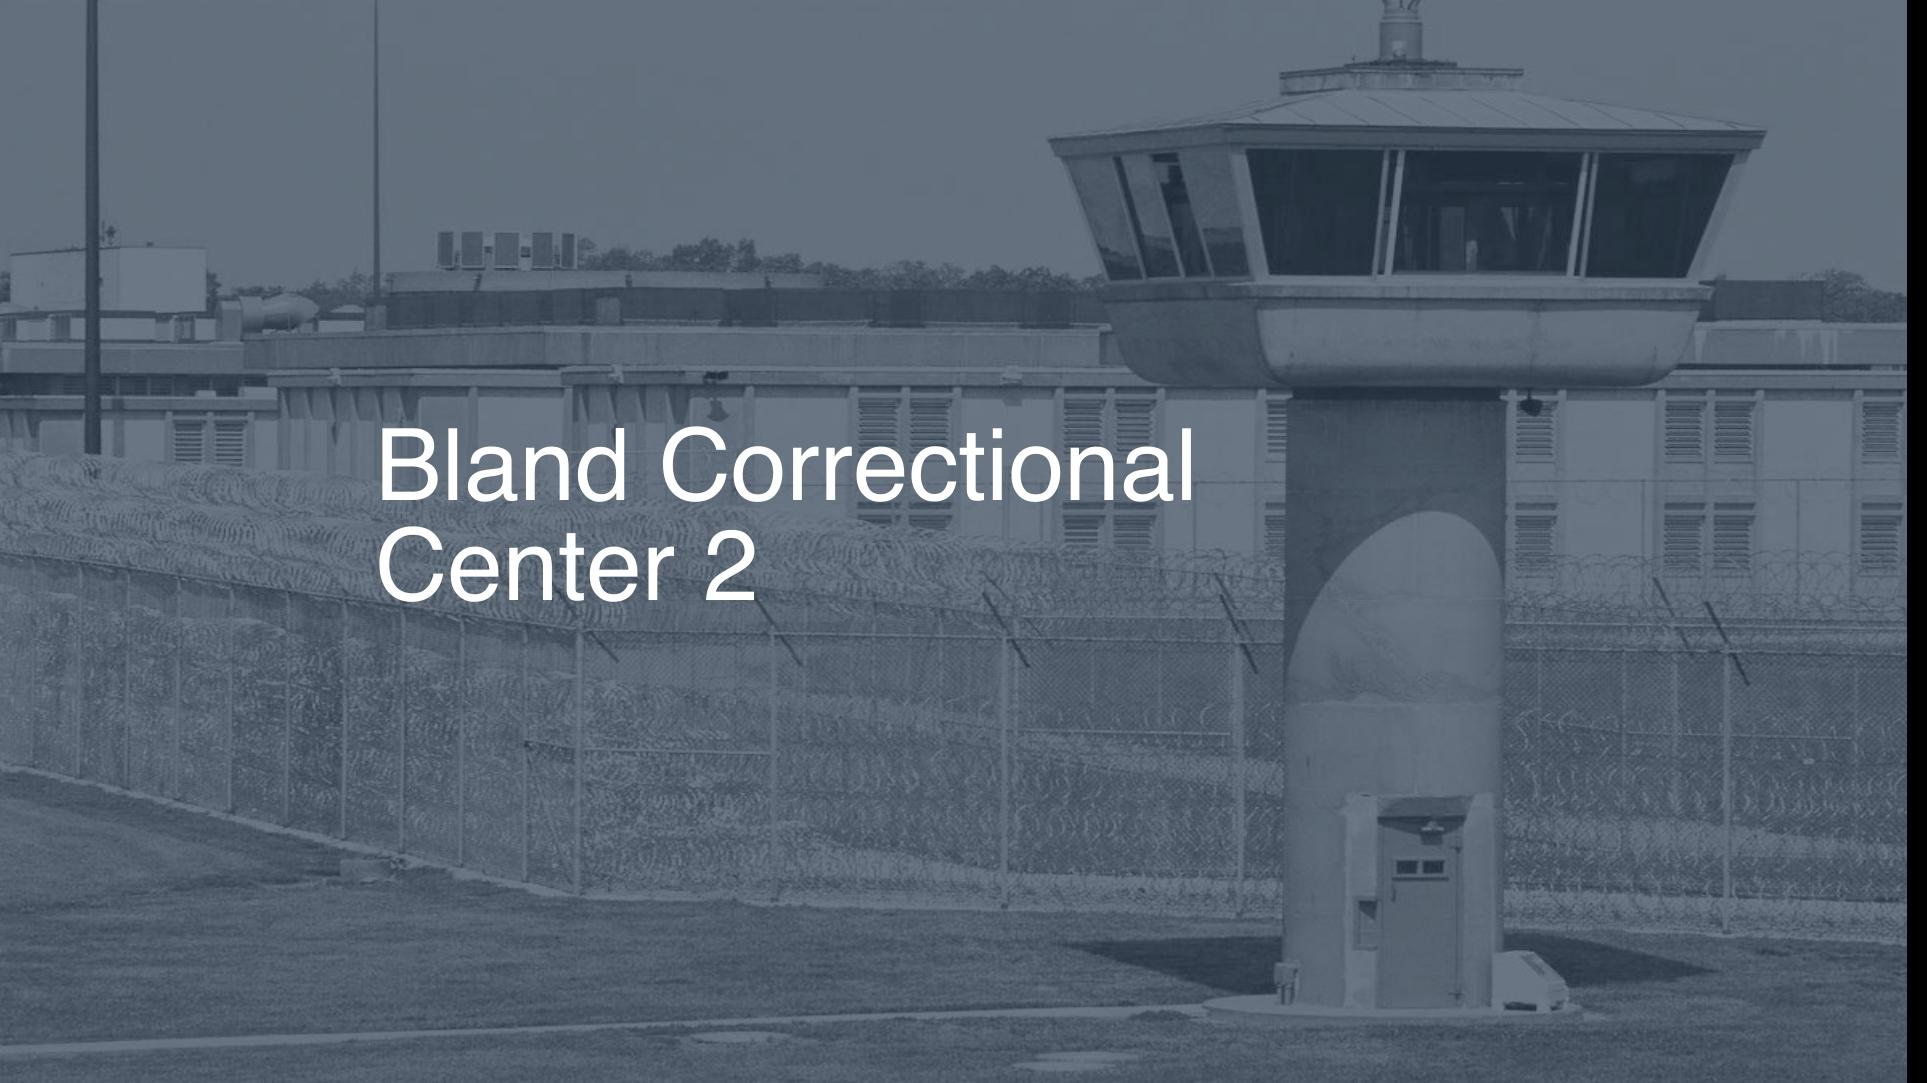 Bland Correctional Center correctional facility picture